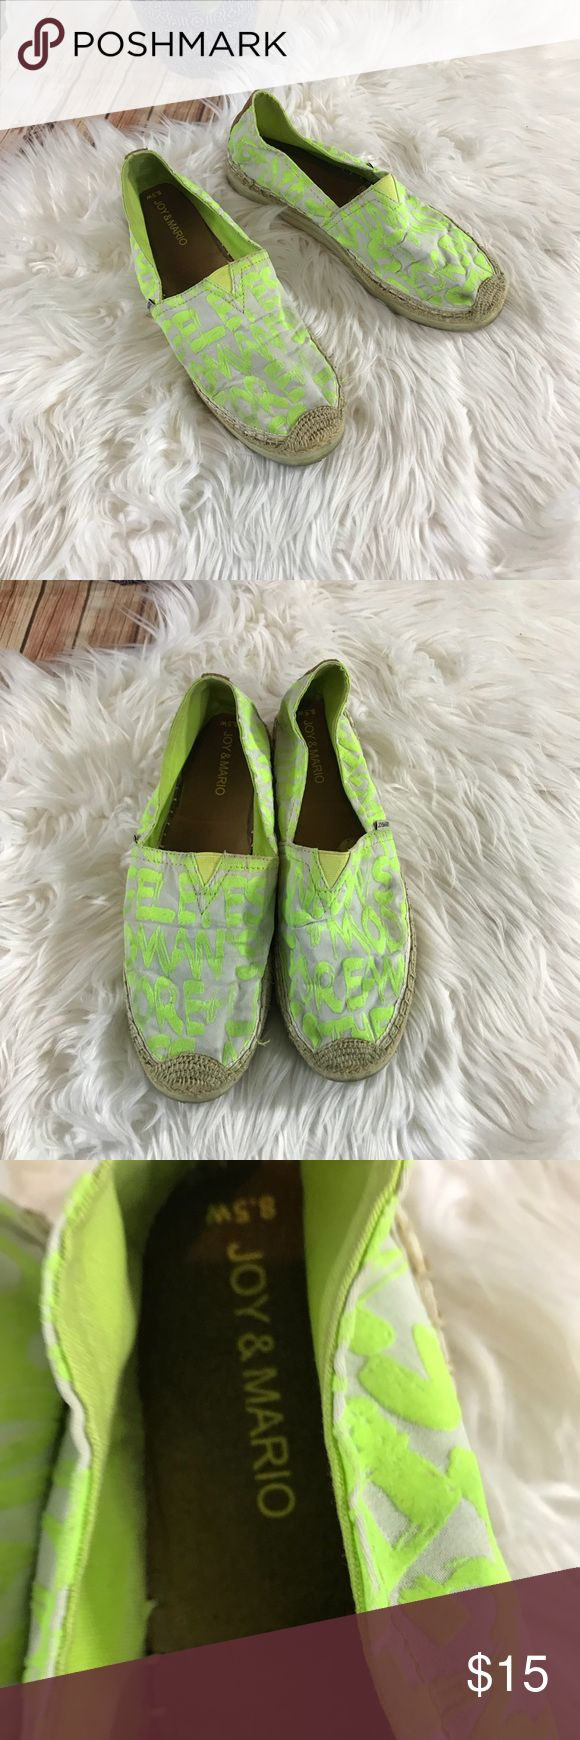 Joy and Mario neon green espadrilles Gently used condition. Size W 8.5 , neon green cotton mesh top ( toms like) and platform espadrilles . joy and mario Shoes Espadrilles